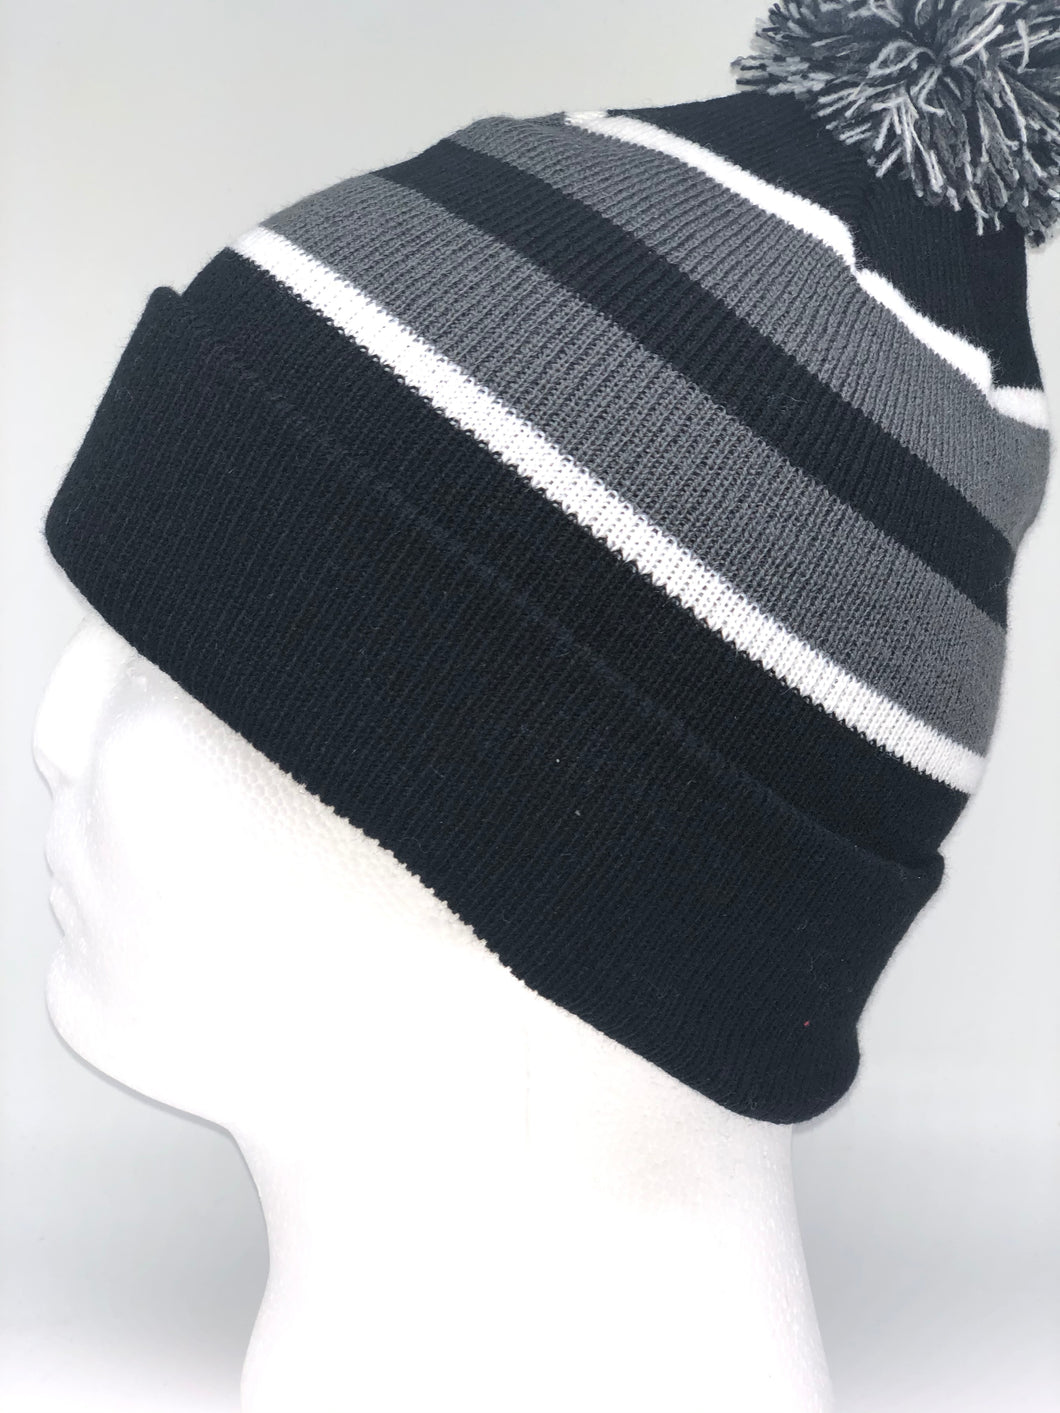 641K Black, White, Graphite Winter Beanie